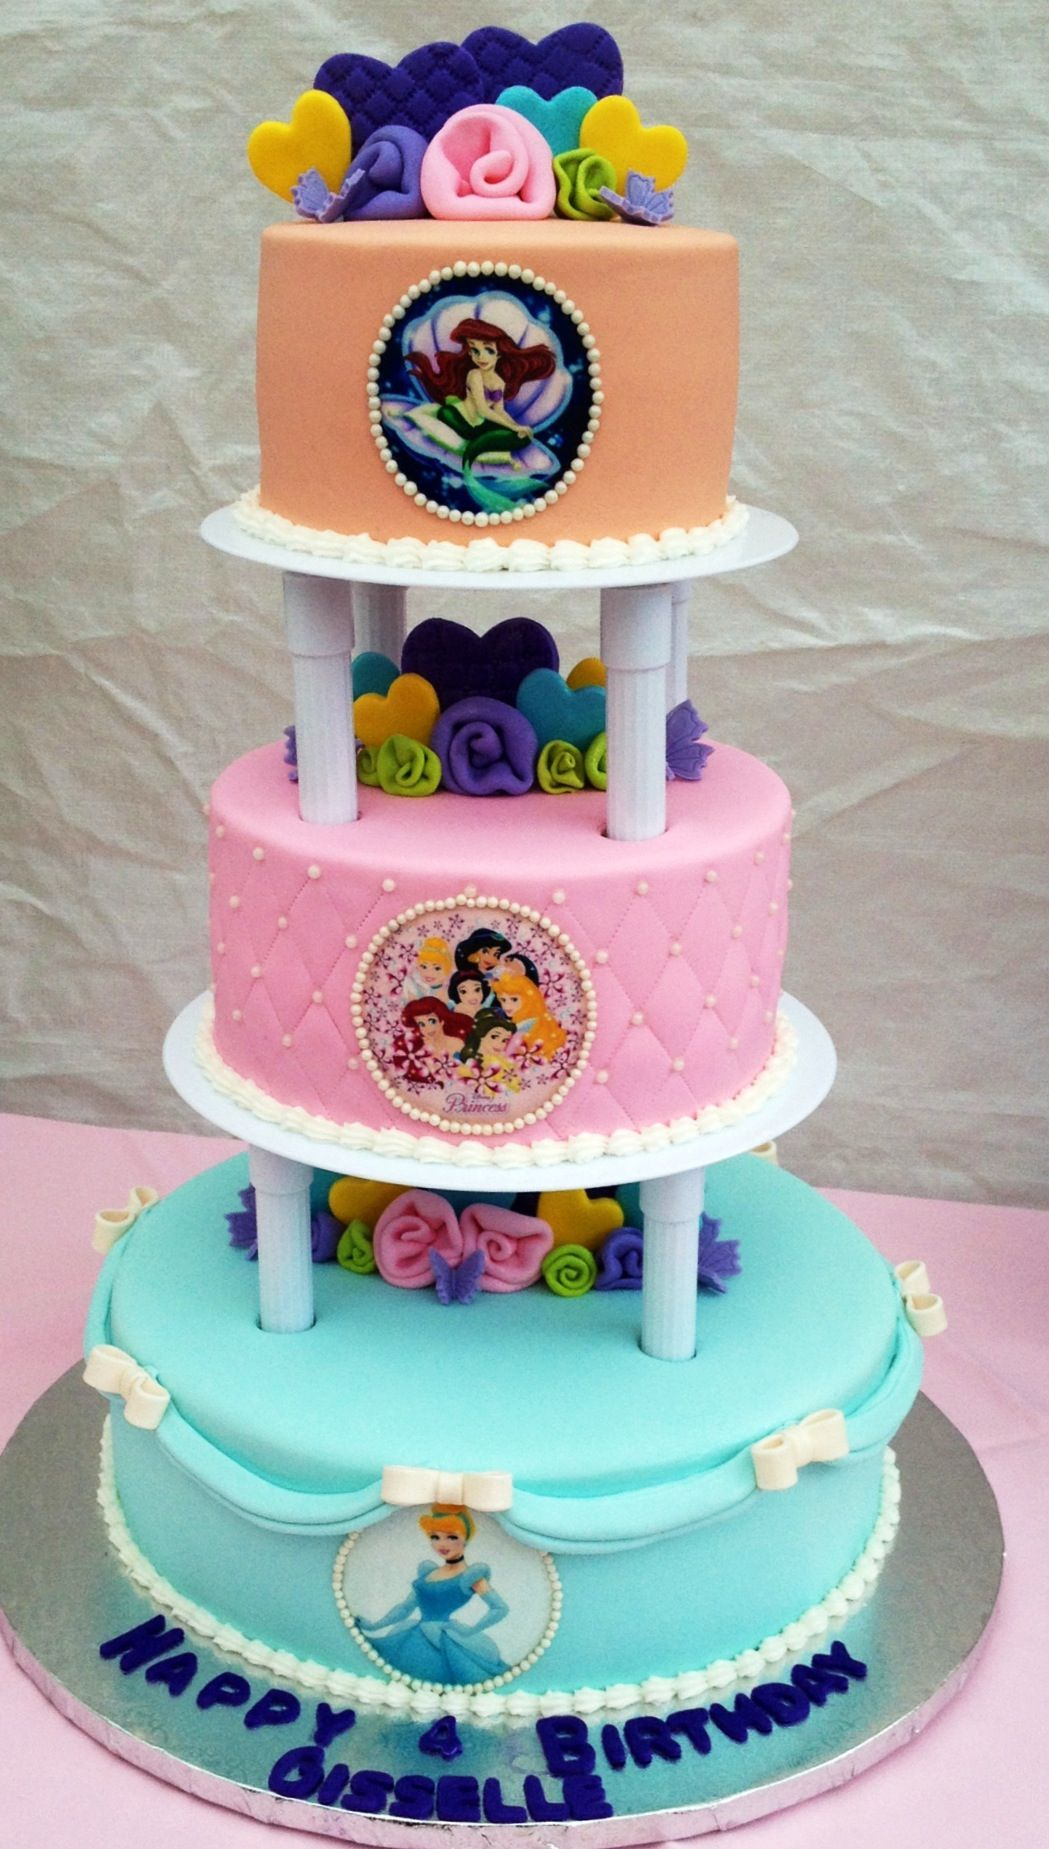 Made This 2 Tier Pillars Princesses Birthday Cake With Edible Images